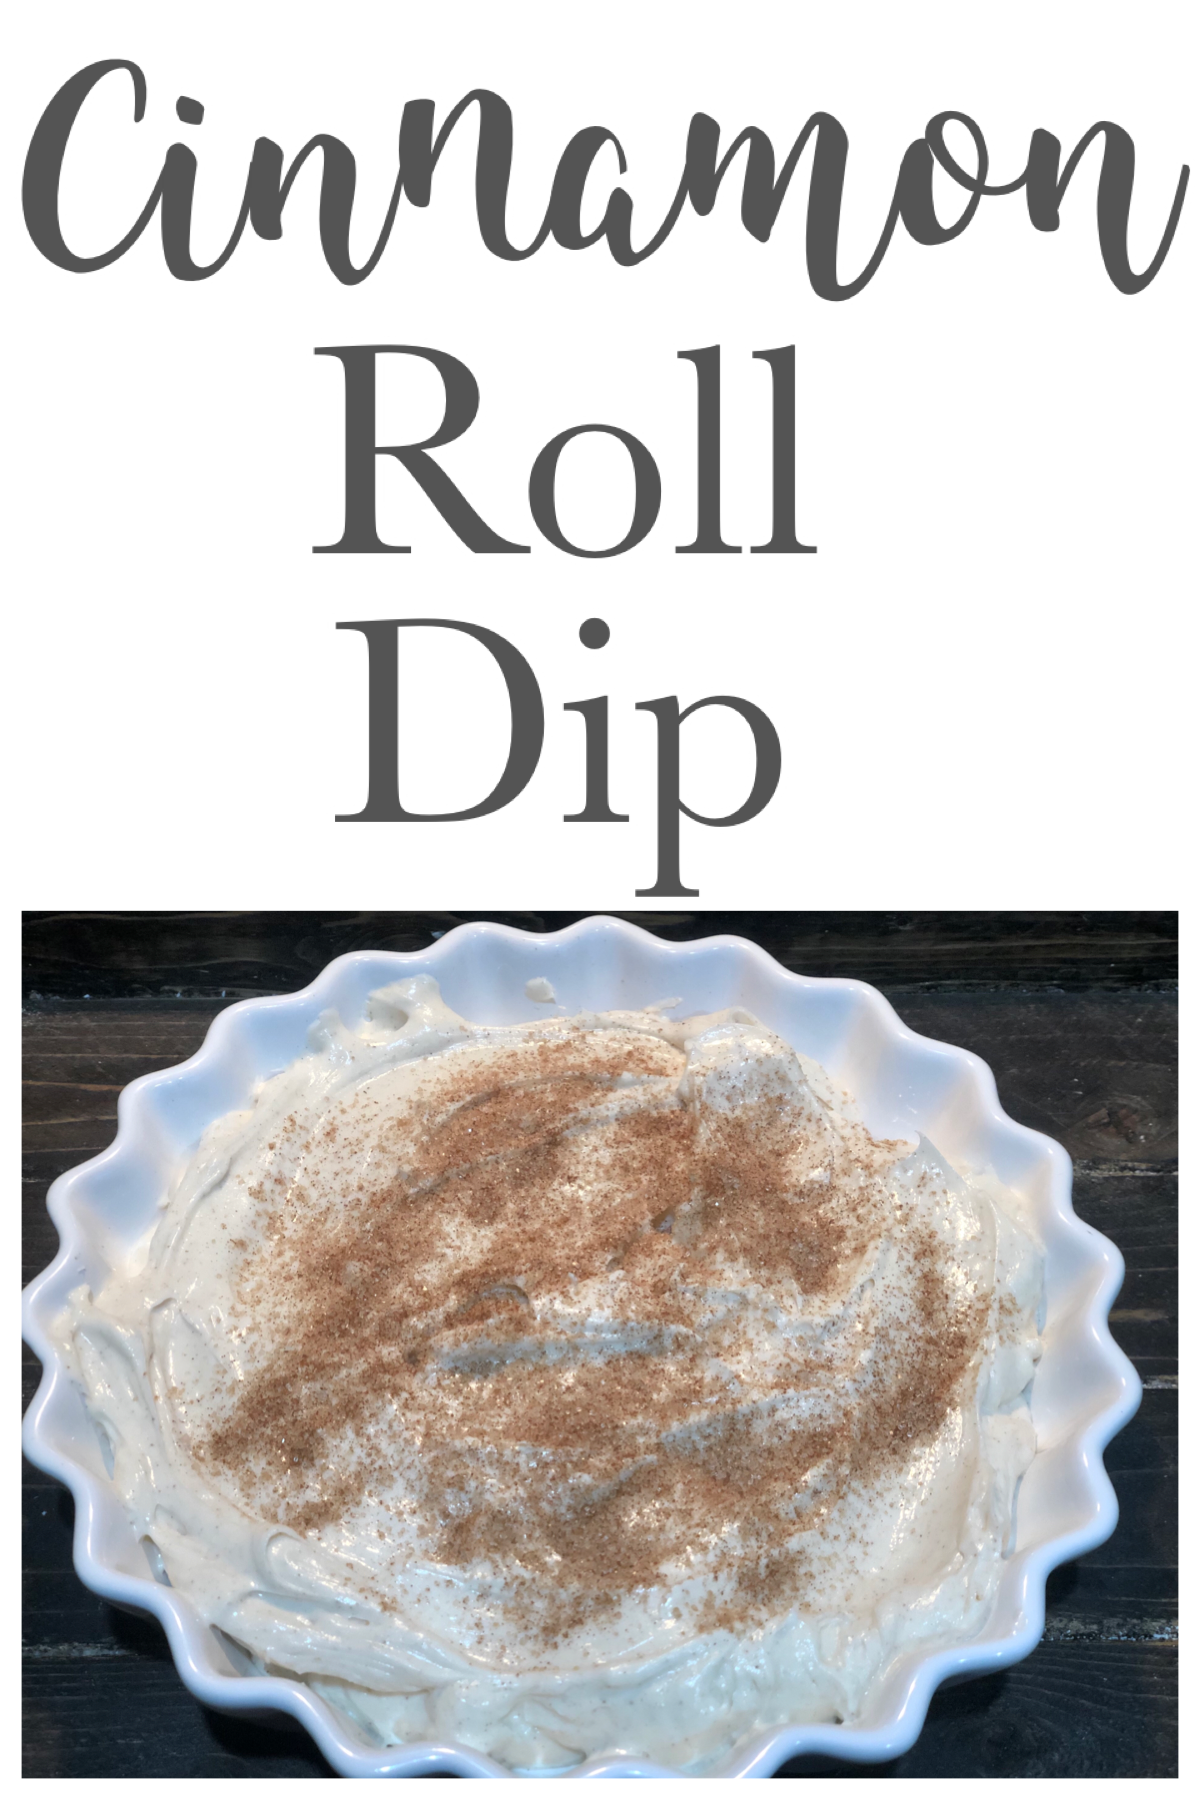 Hey guys, I'm back with another great no bake dessert recipe, this Cinnamon Roll Dip takes 5 minutes to make and will be a huge hit with everyone! FrugallyFantastic.com